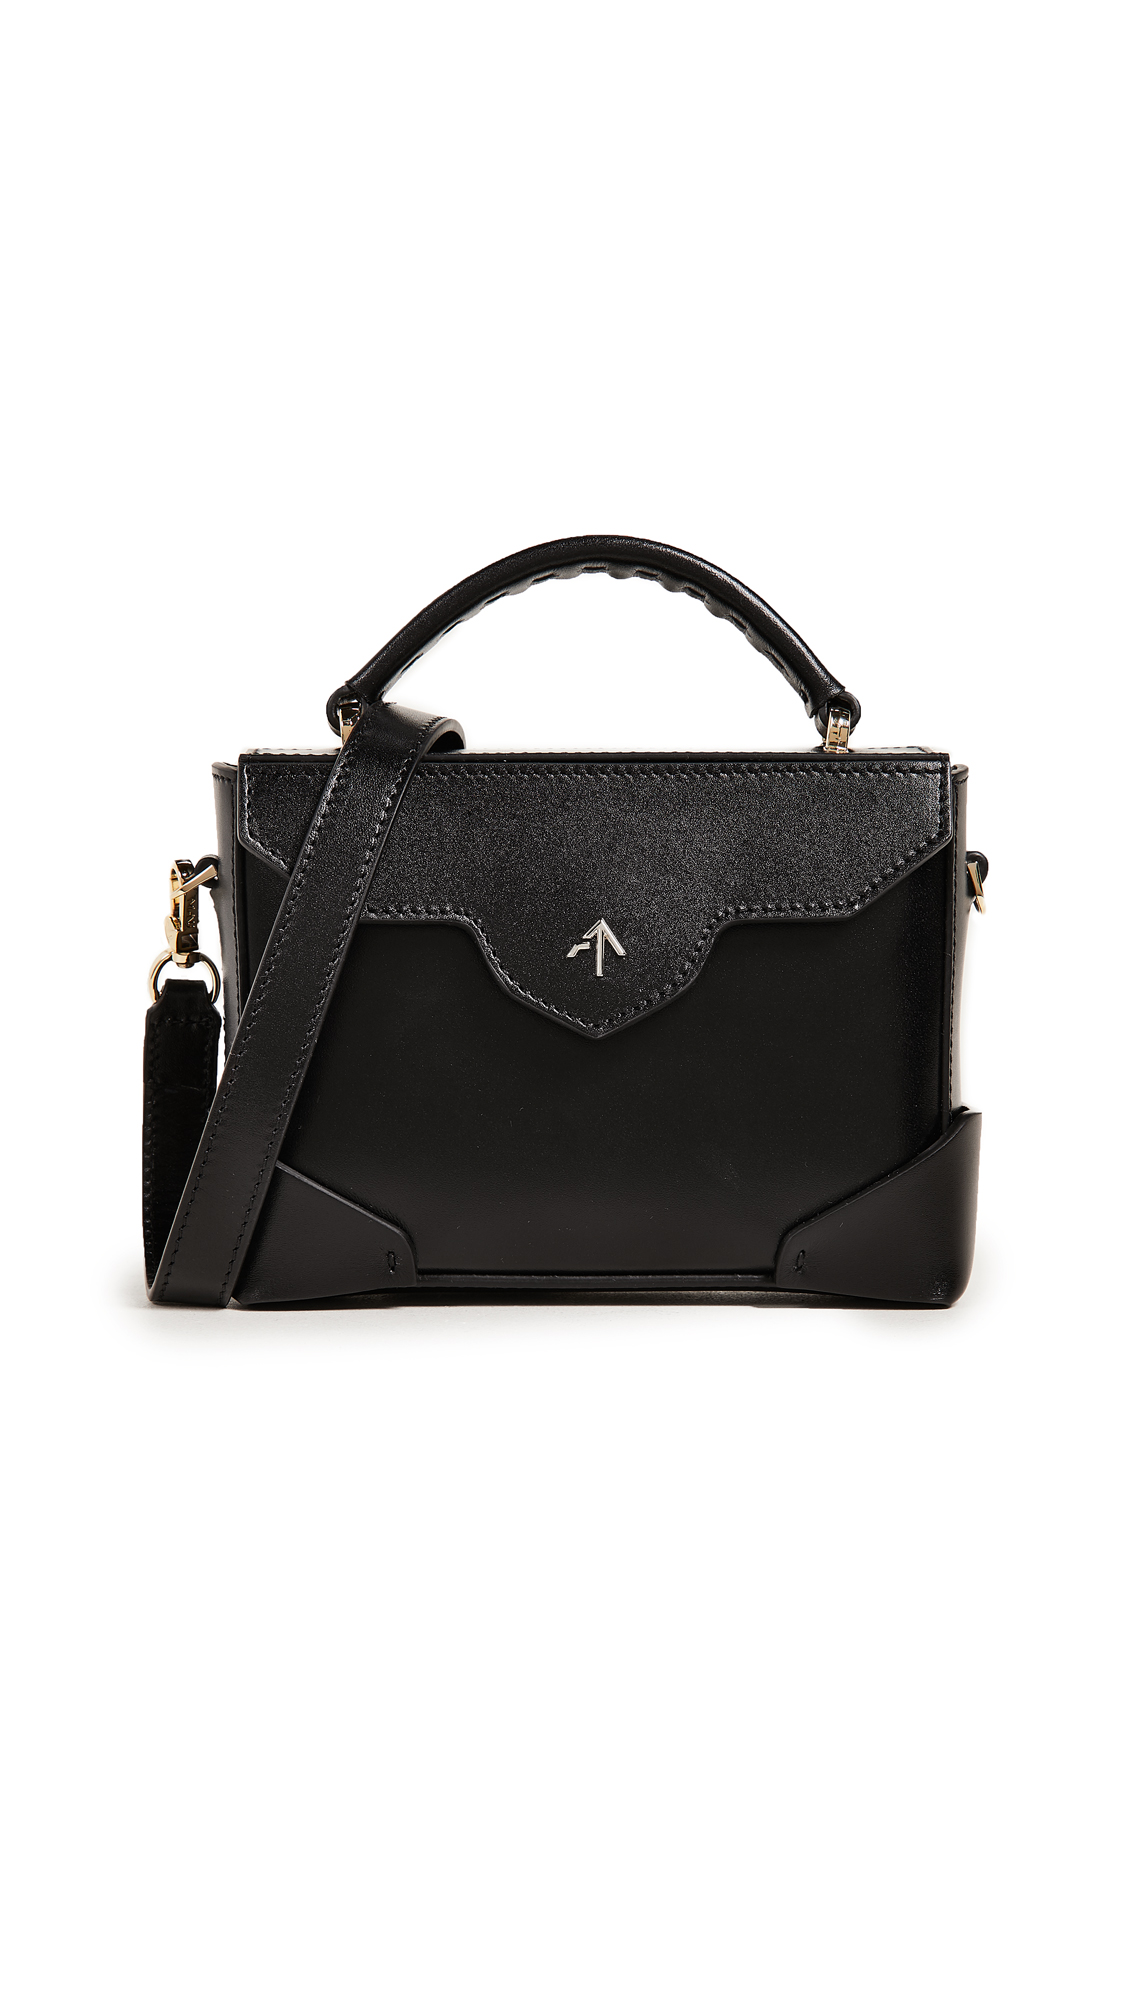 Micro Bold Leather Shoulder Bag With Chain Strap in Black